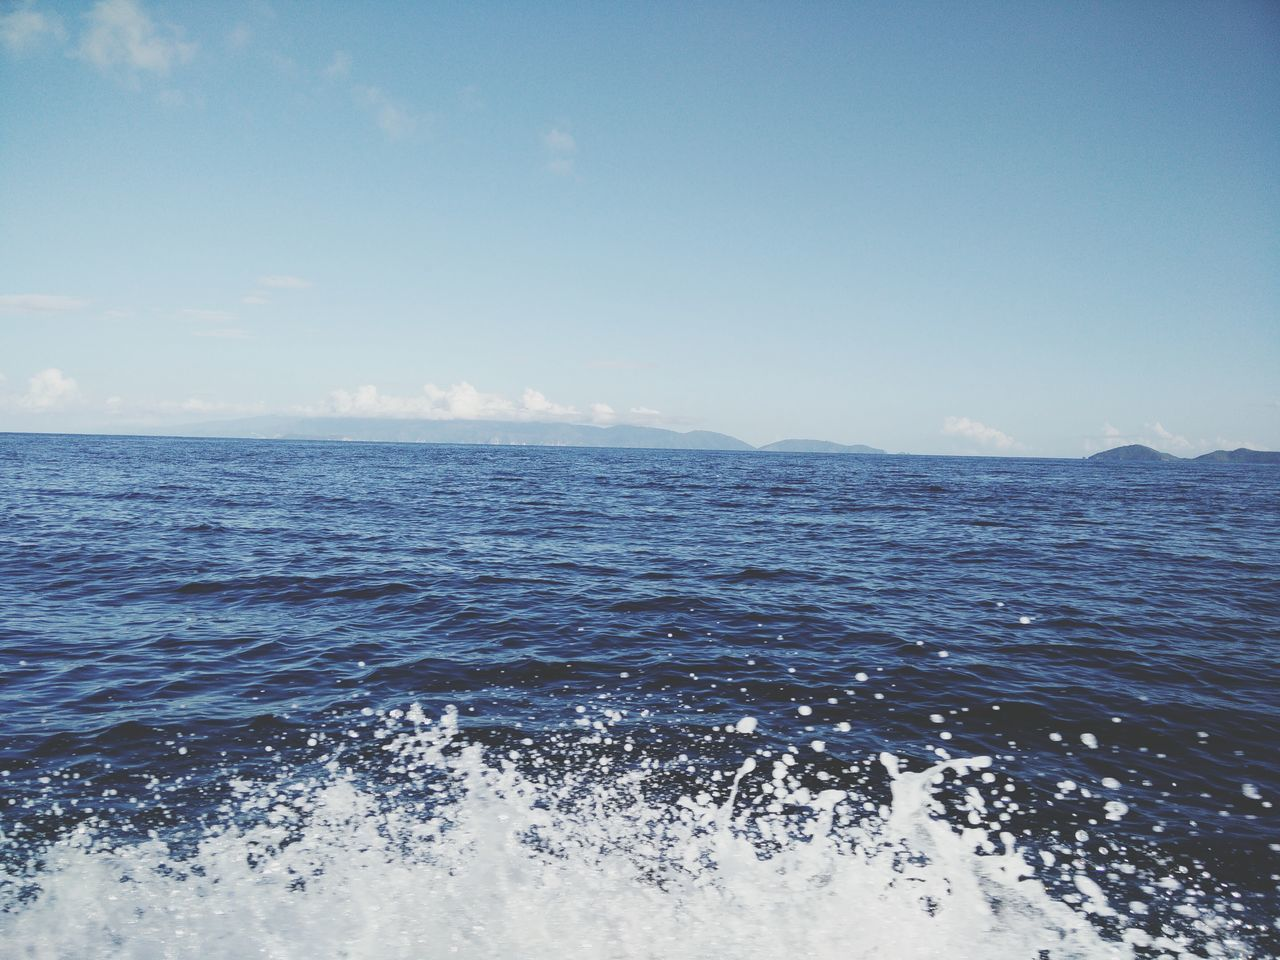 sea, water, nature, beauty in nature, scenics, tranquility, no people, outdoors, tranquil scene, rippled, waterfront, horizon over water, day, sky, wave